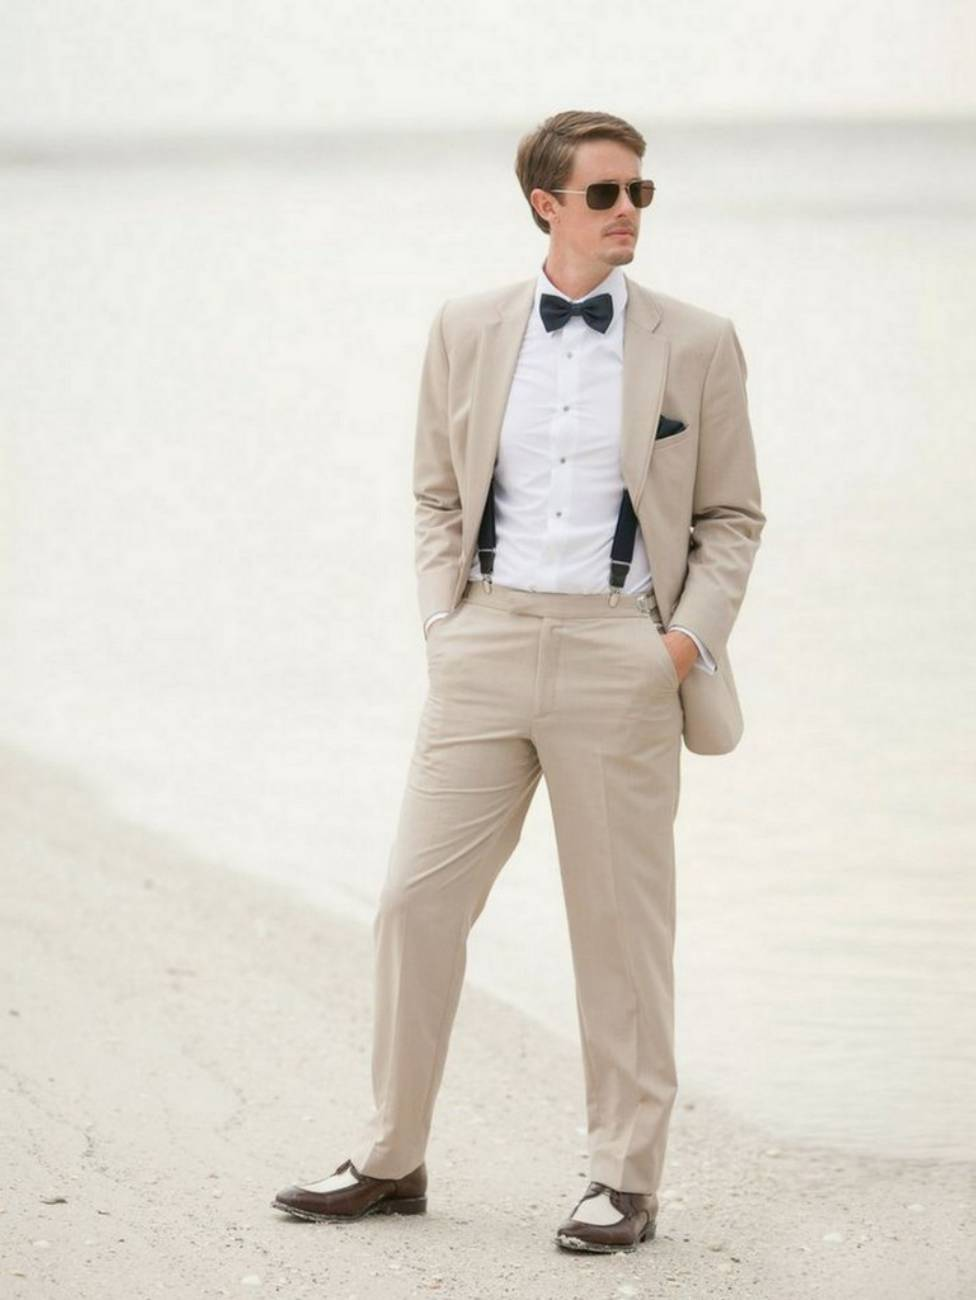 10 Amazing Wedding Suits for Men - GetFashionIdeas.com ...